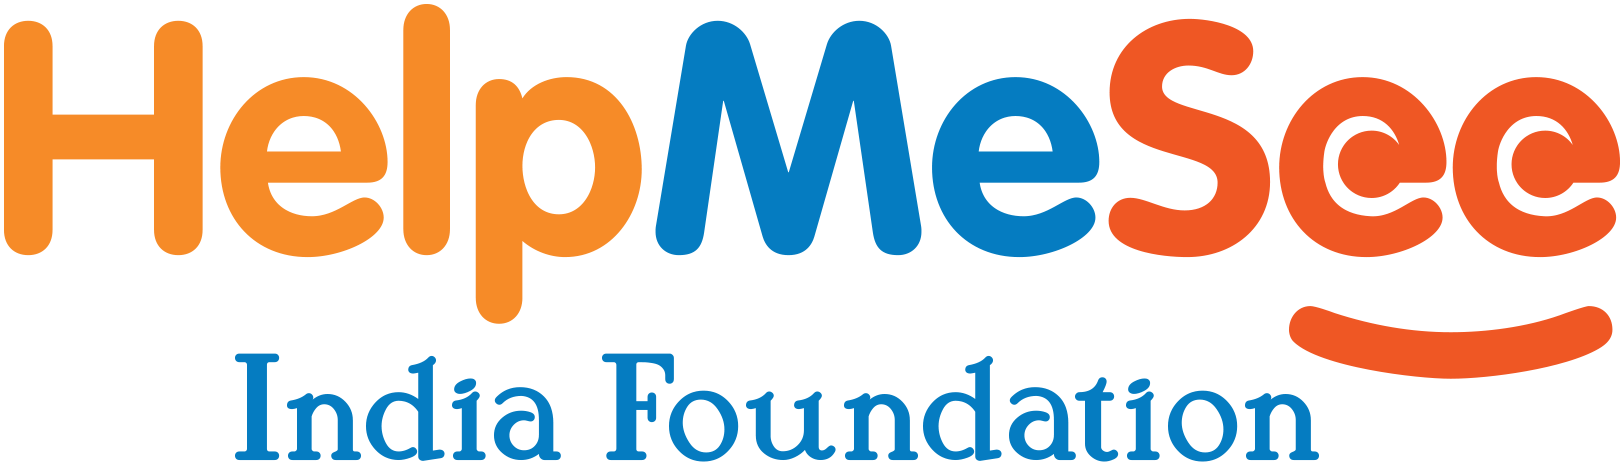 HelpMeSee India Foundation